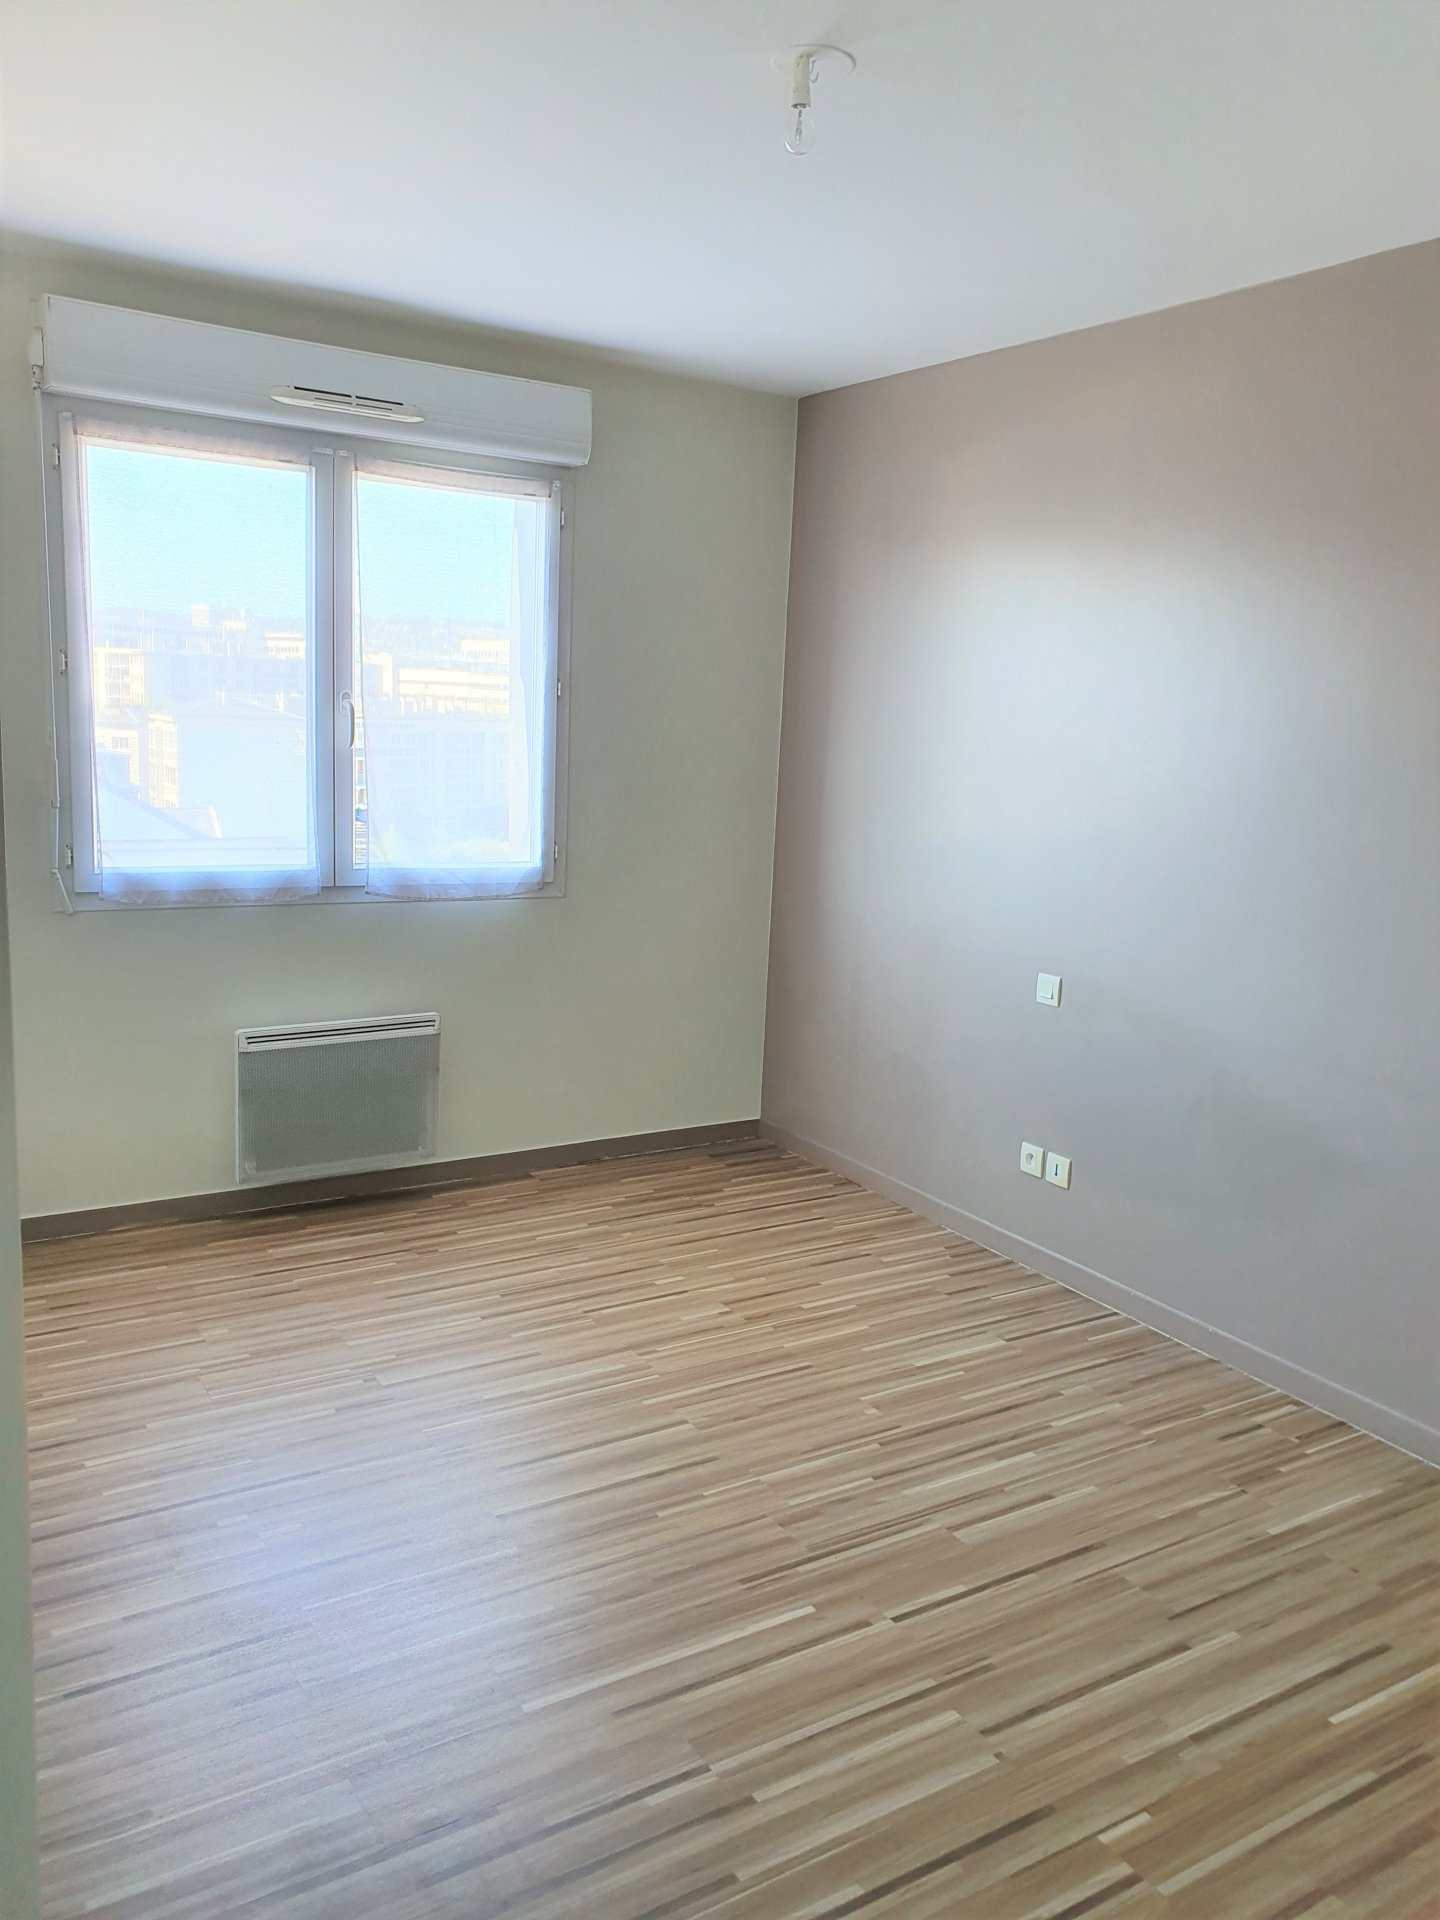 APPARTEMENT TYPE 4 - QUARTIER SAINT SEVER LAFAYETTE - ROUEN